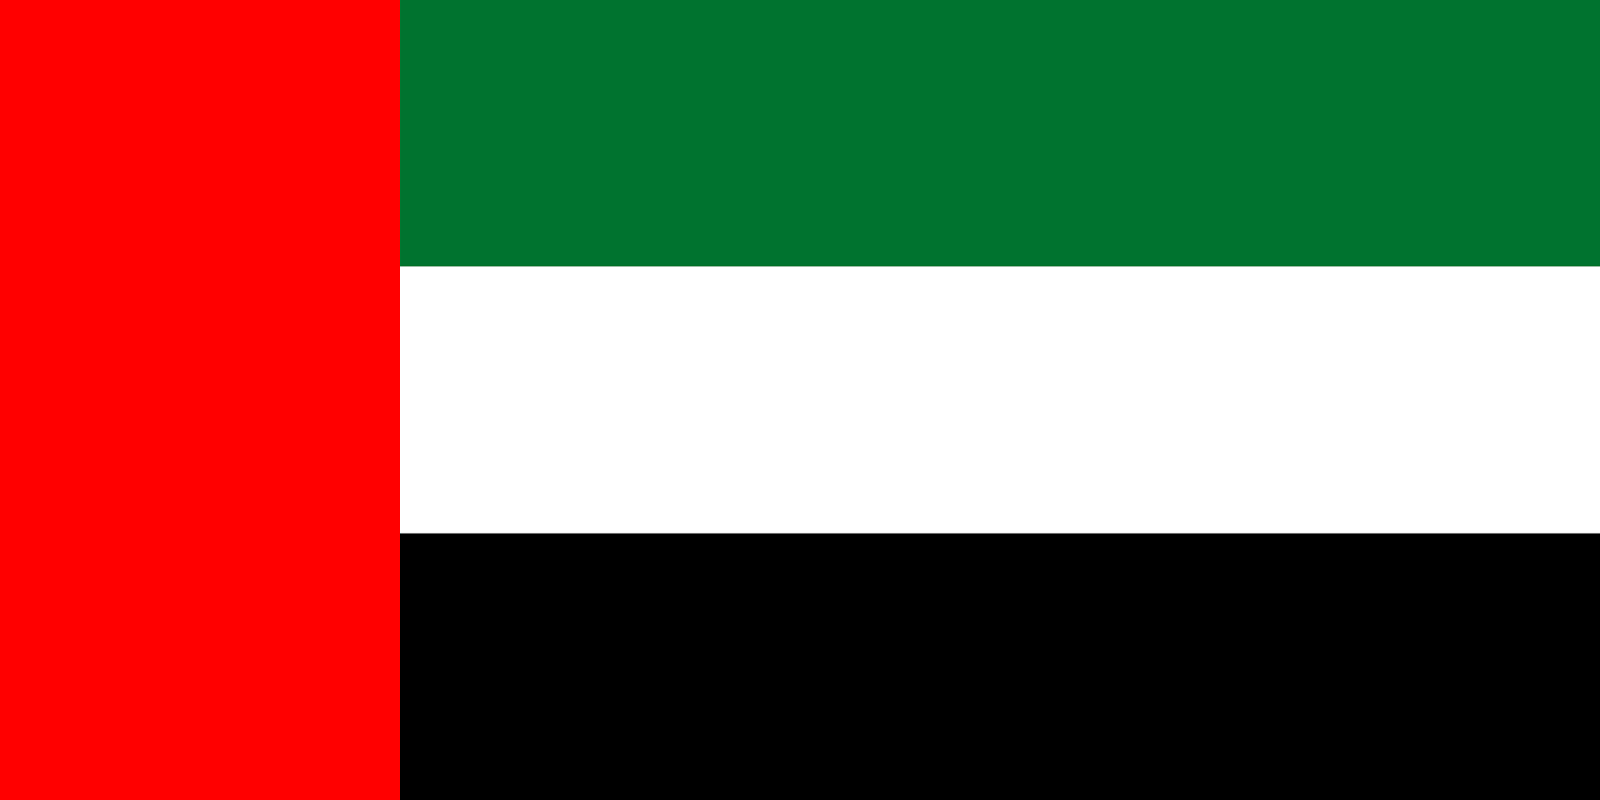 UAE flag.png